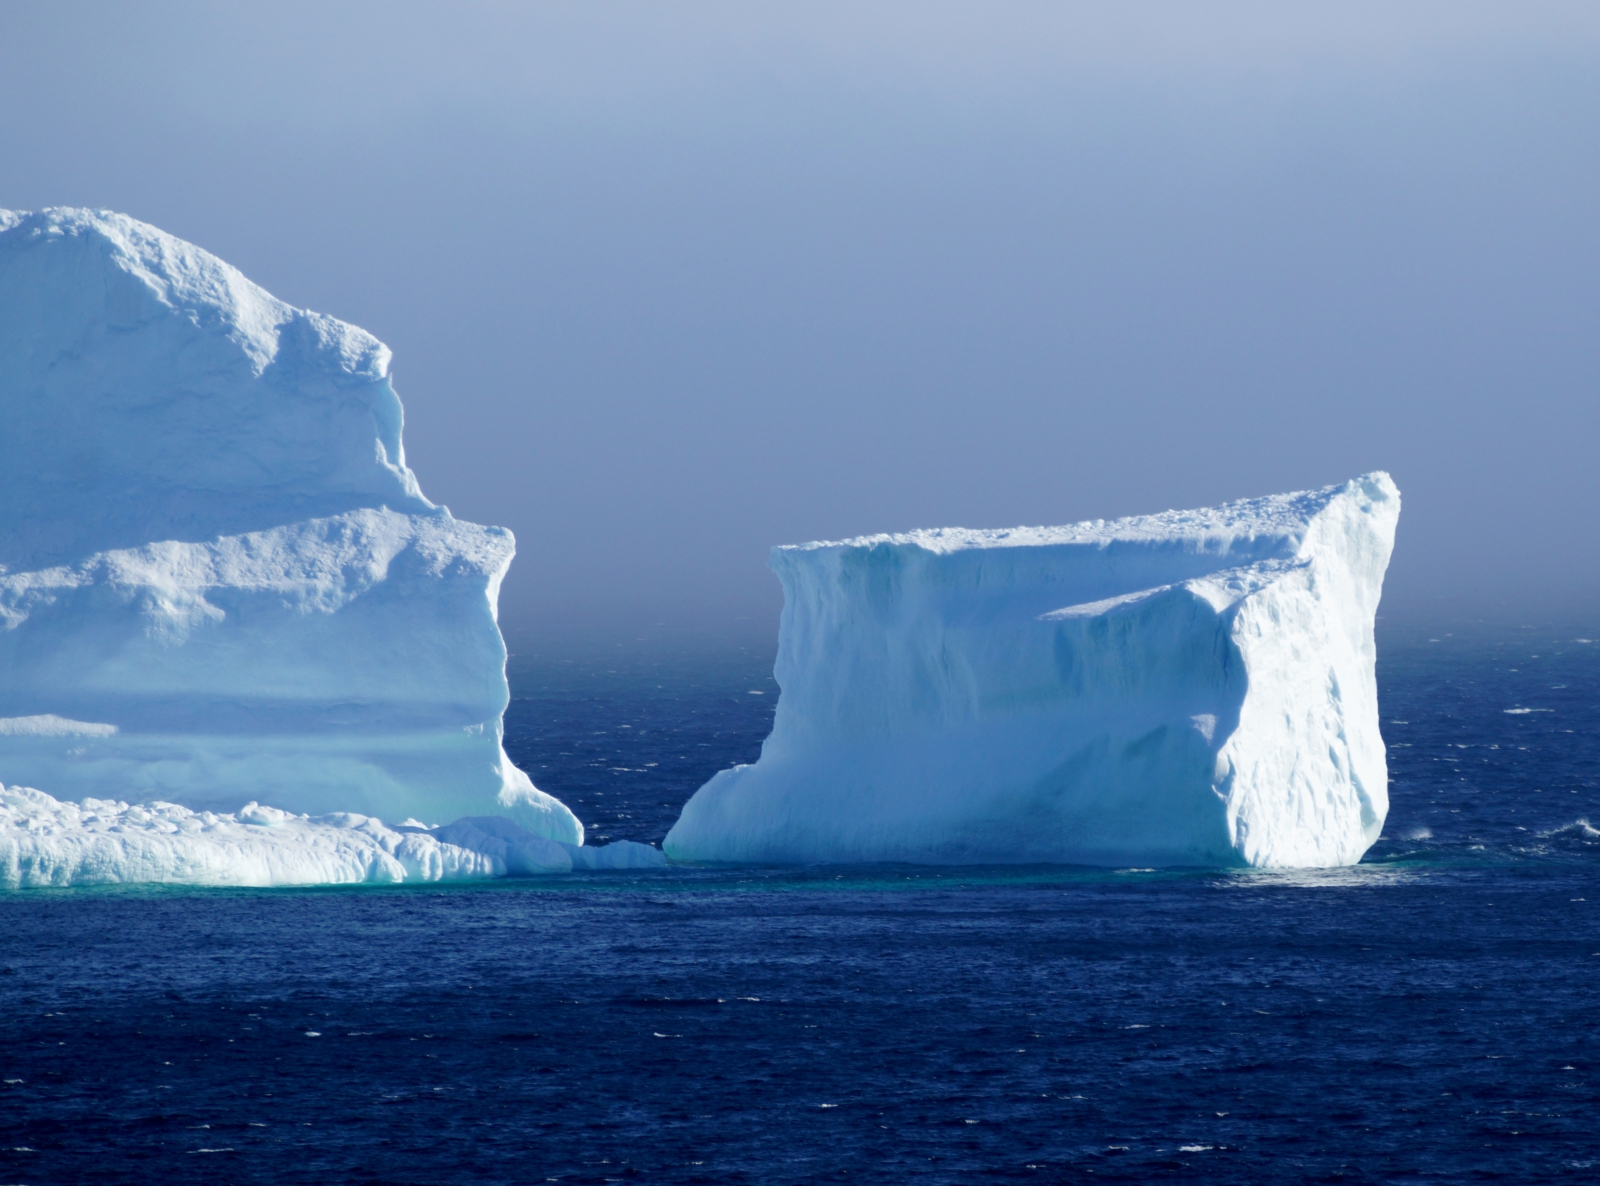 Crowds Flock to See Giant Newfoundland Iceberg